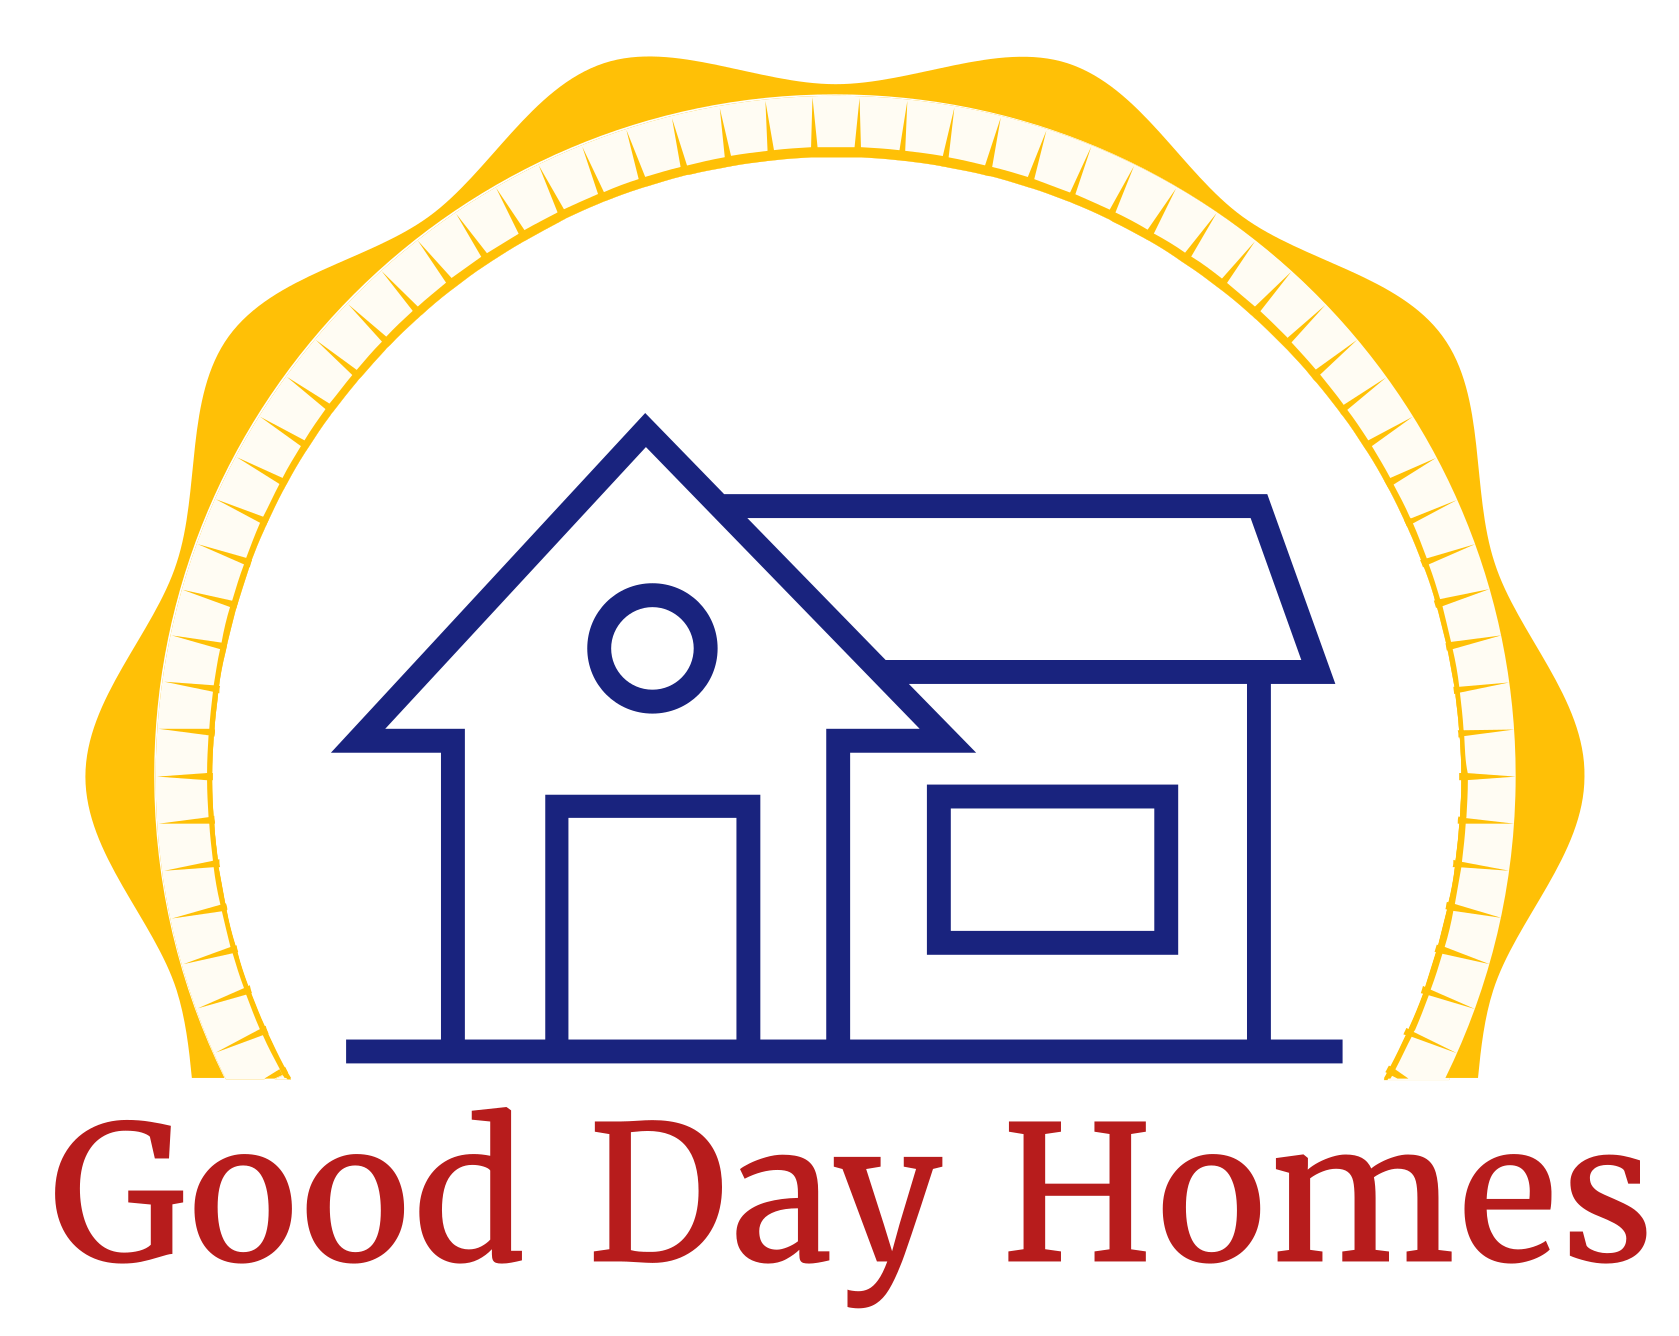 Good Day Homes, LLC